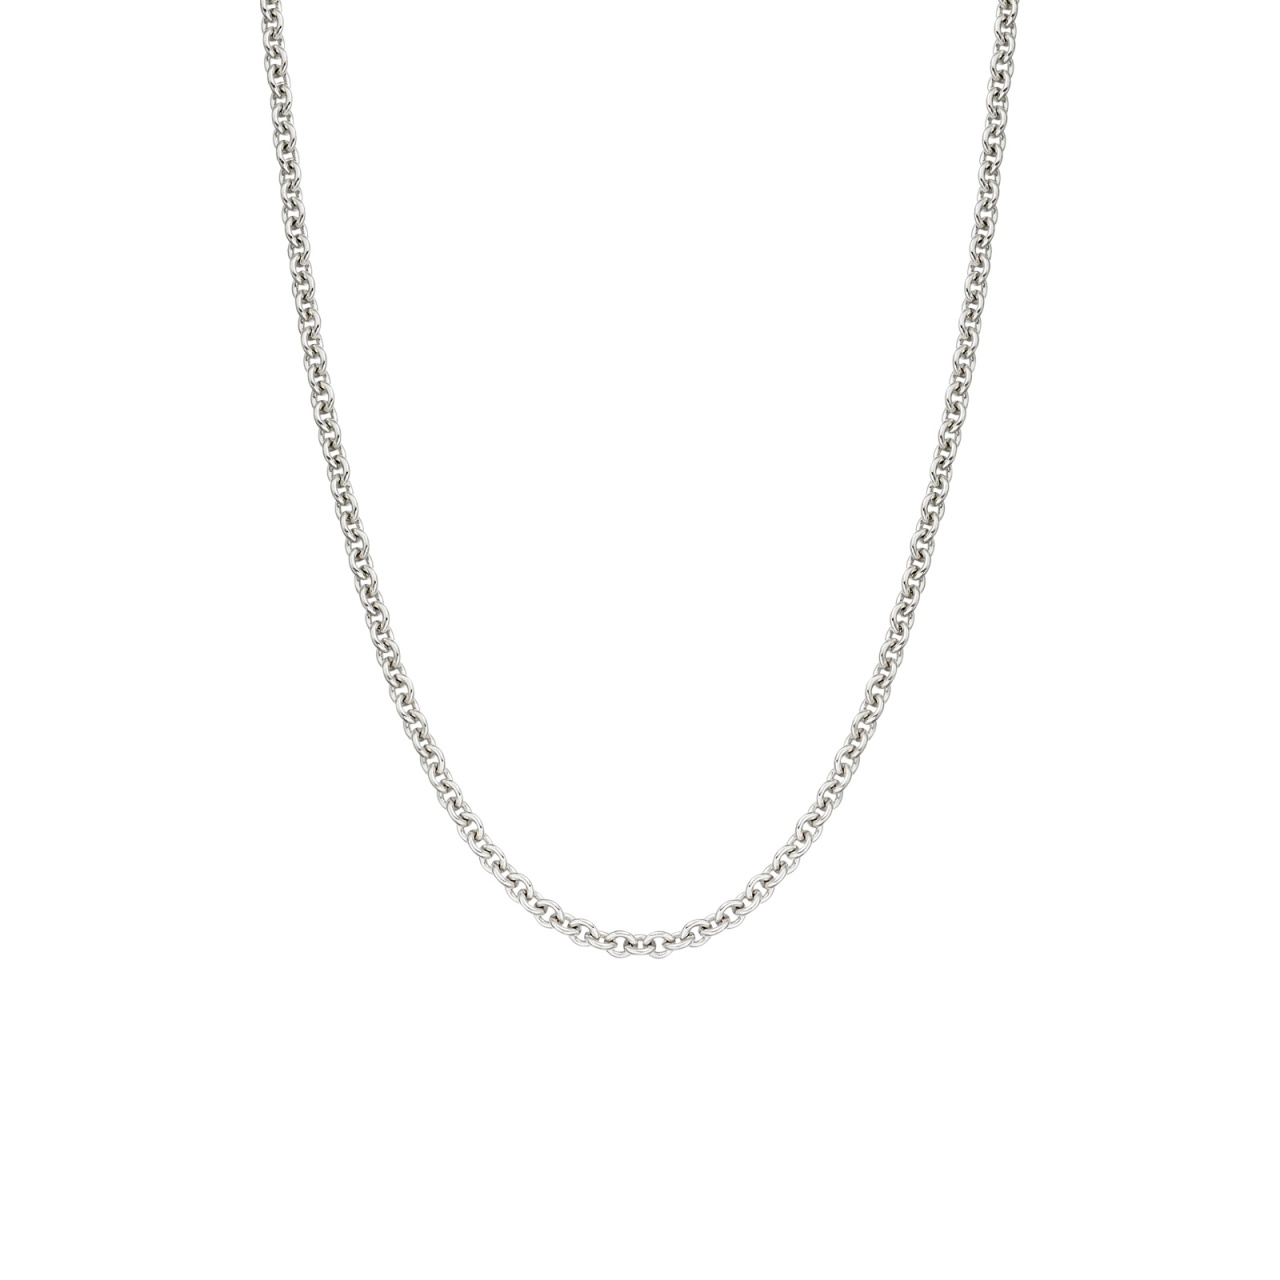 18 Carat White Gold Trace Chain 1.6mm Width-CHVARWG1080-1